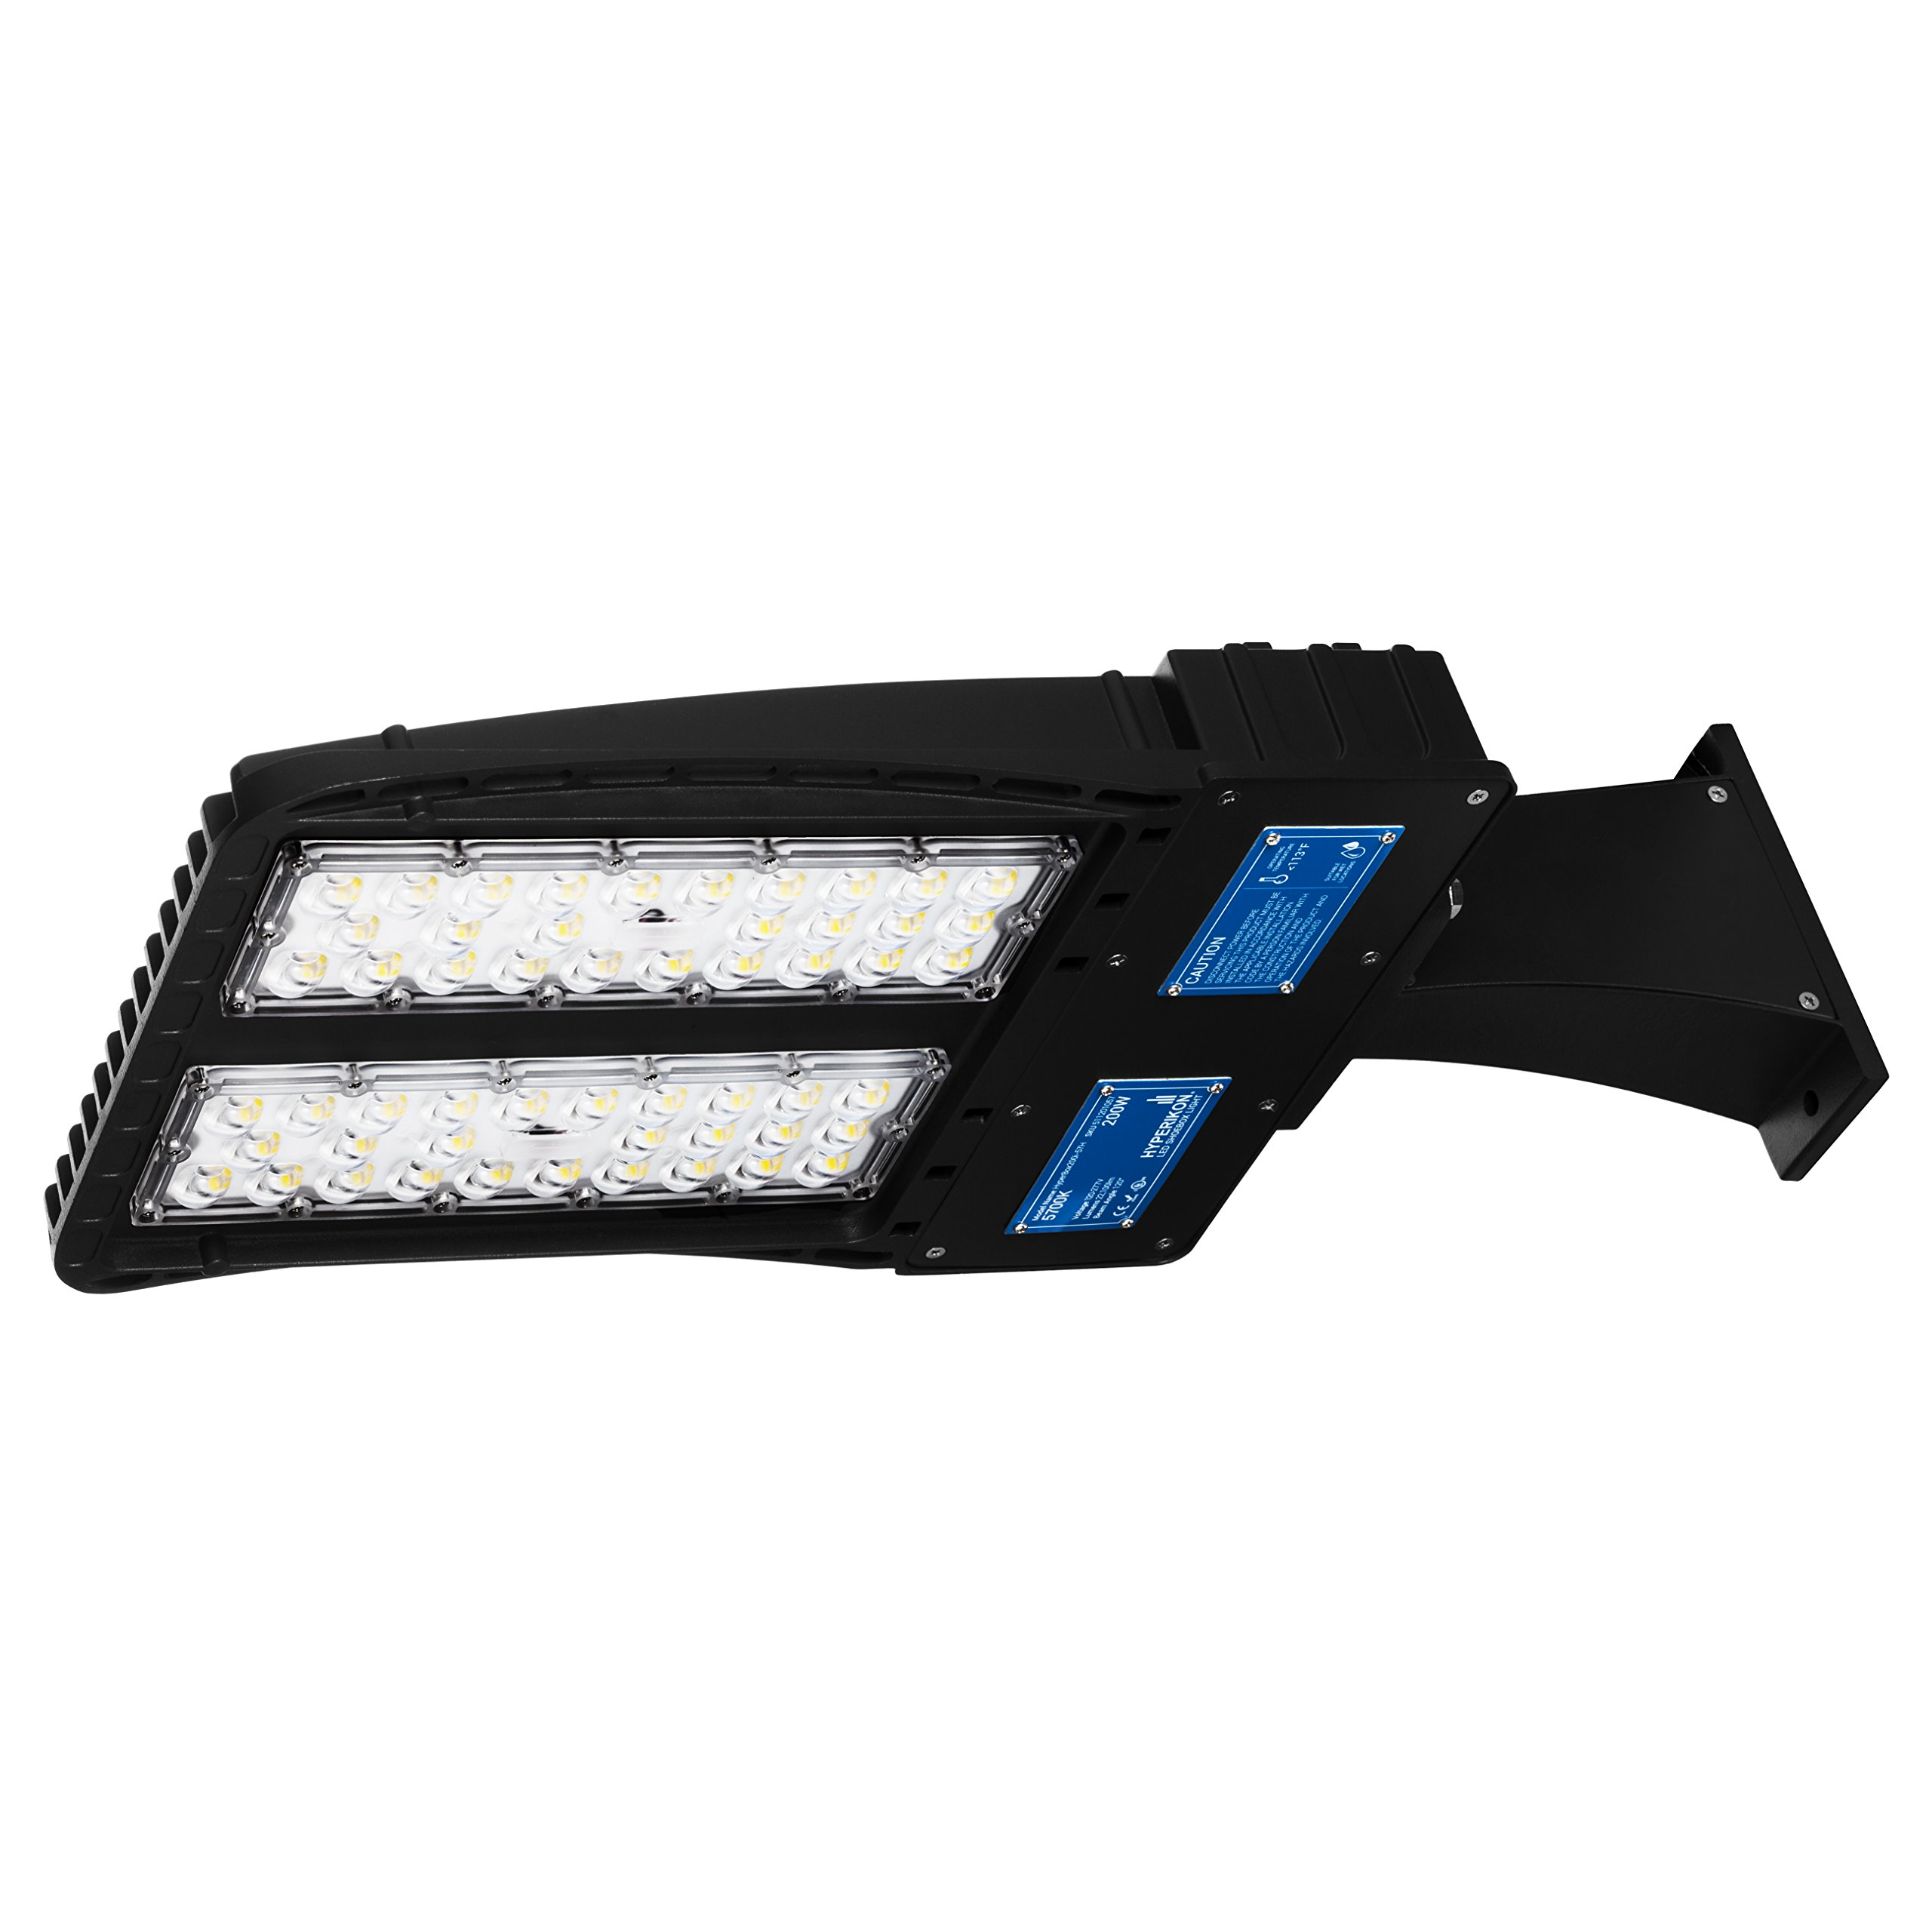 Hyperikon LED Shoebox Pole Light, 200W (600W HID/HPS Replacement) 5700K, 22,100 lumen, Direct Wiring AC 100-277V, Street Parking Lot Lights, Free Photocell Included, IP65, UL & DLC